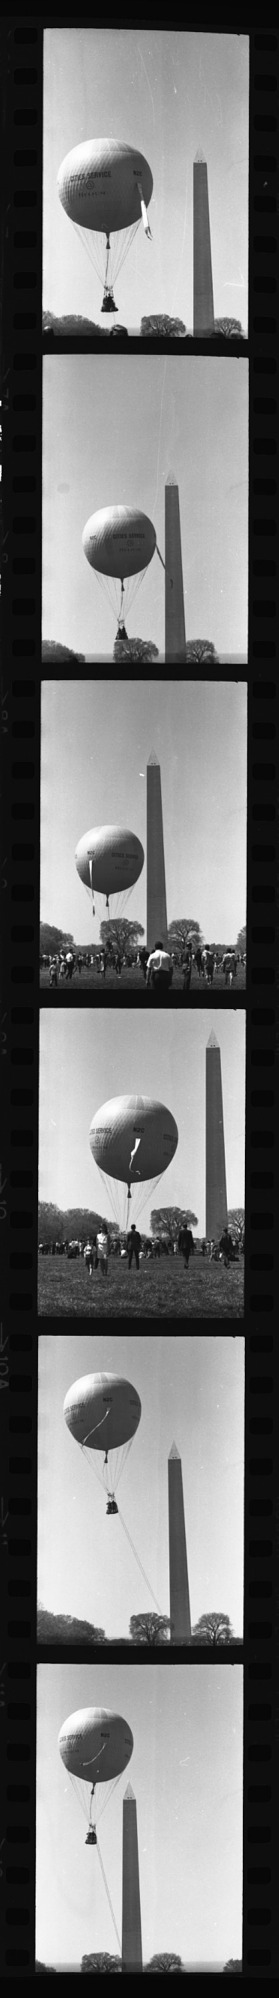 Hot Air Balloon Launch, 1965, Smithsonian Institution Archives, SIA Acc. 11-008 [OPA-25].